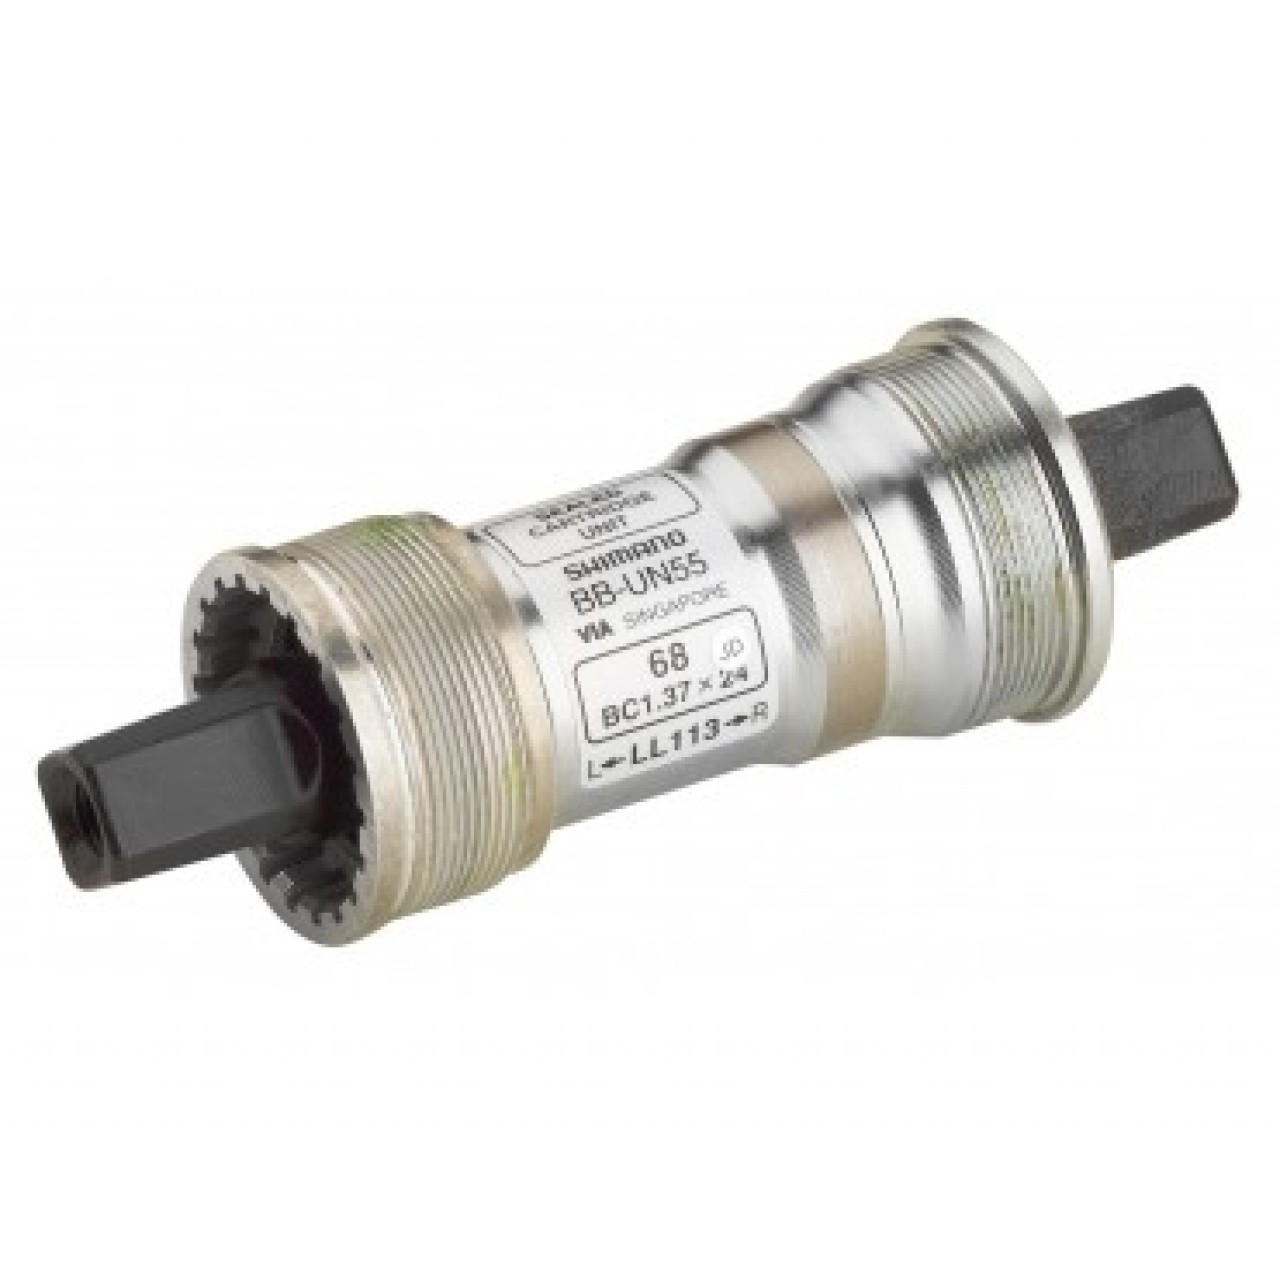 Bb Innenlager Shimano Un55 Shimano - Bb-un55 Bottom Bracket - Bsa, 14,90